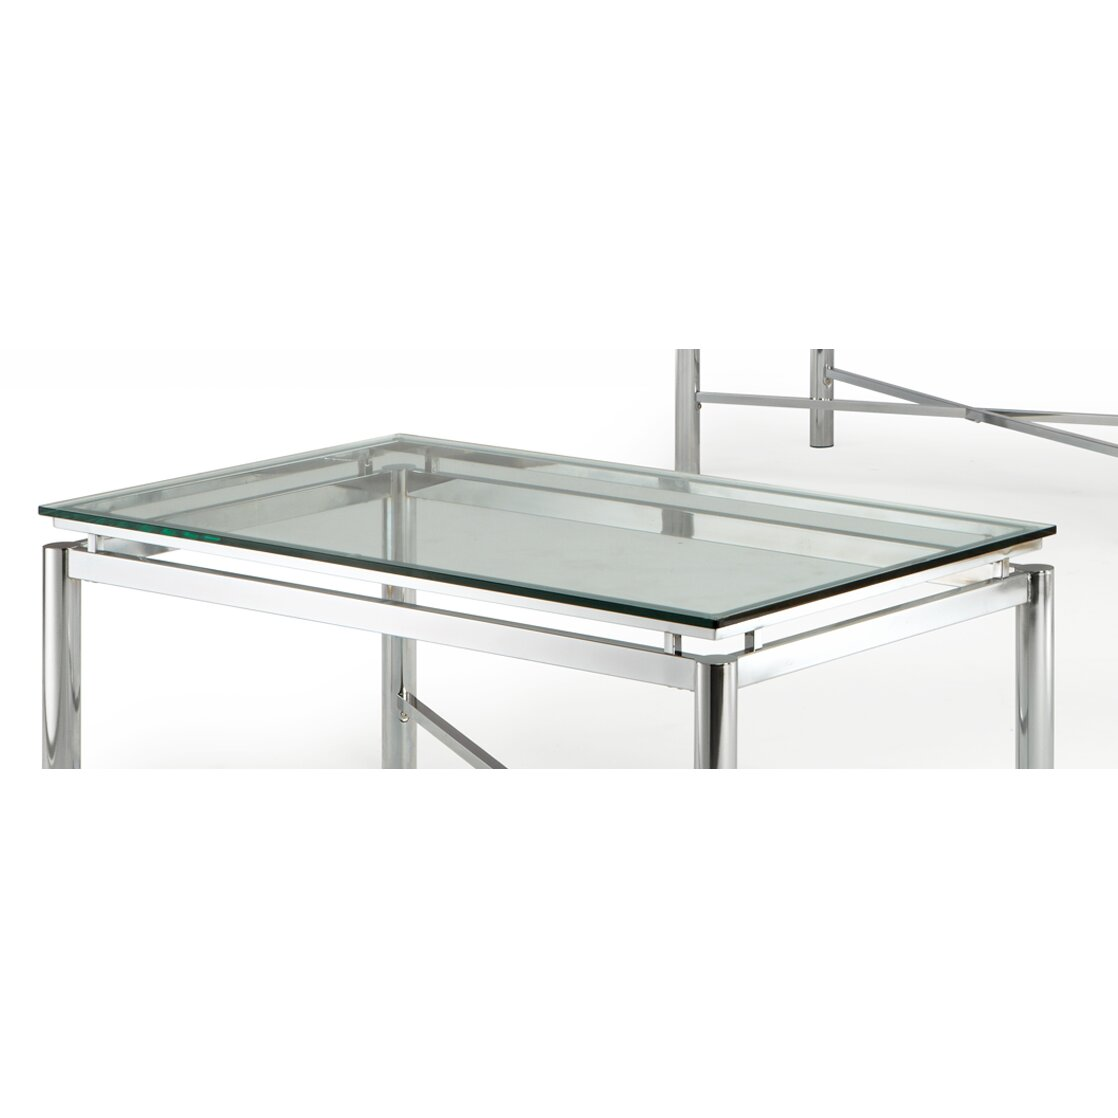 Steve silver furniture nova coffee table reviews Steve silver coffee tables